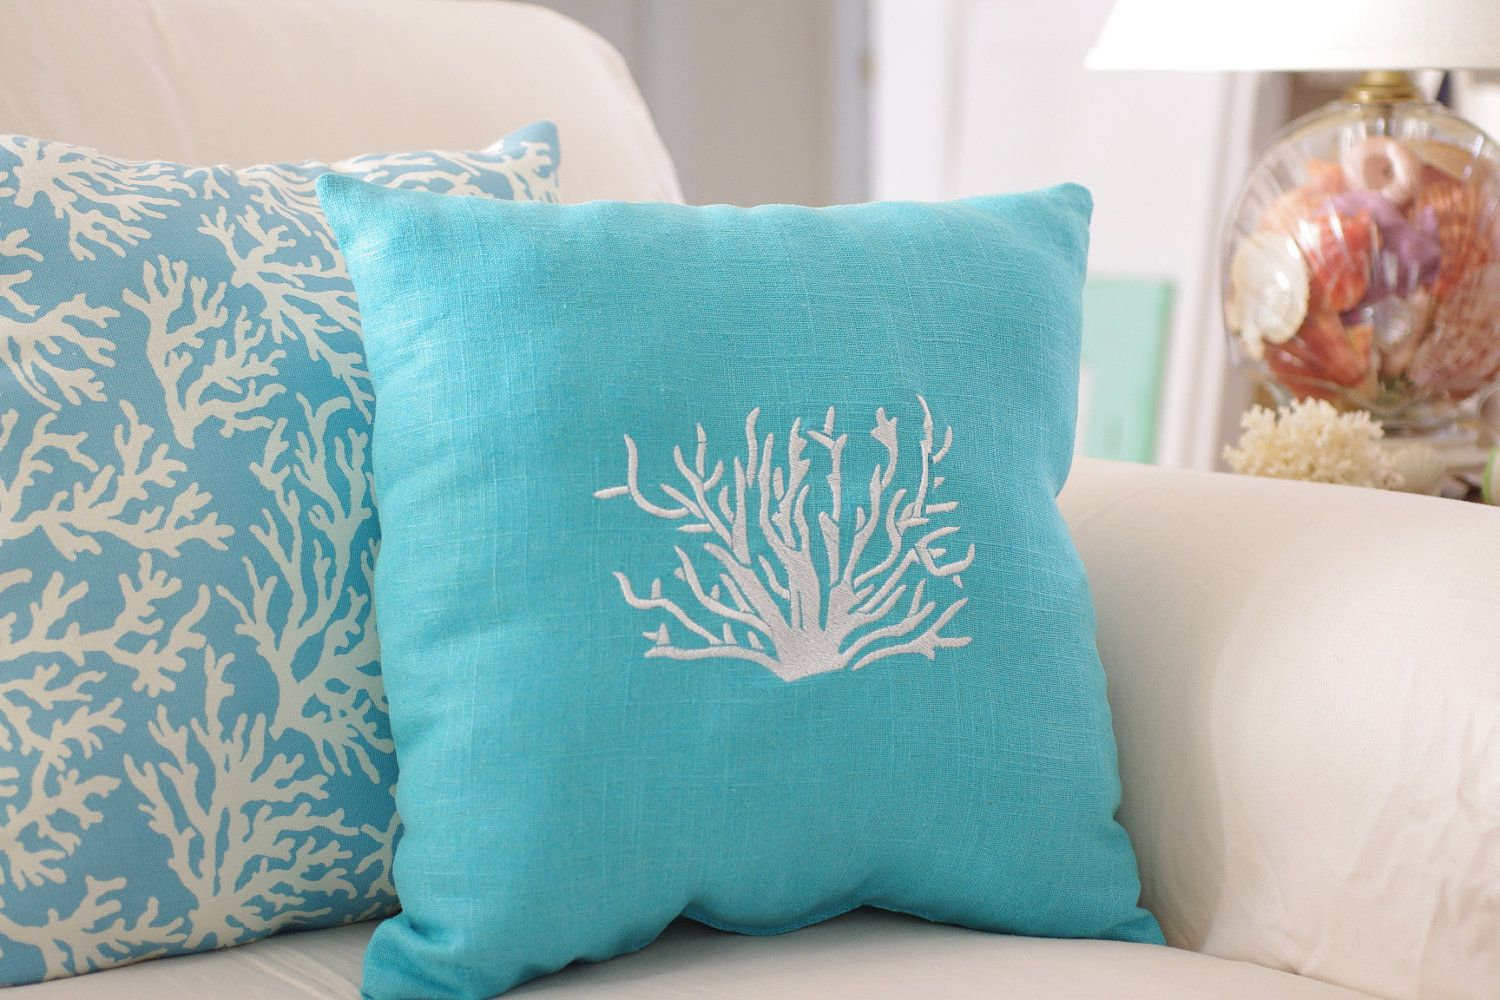 on beach n pillows collection pillow cushions images pinterest malibu style best decor decorative coastal